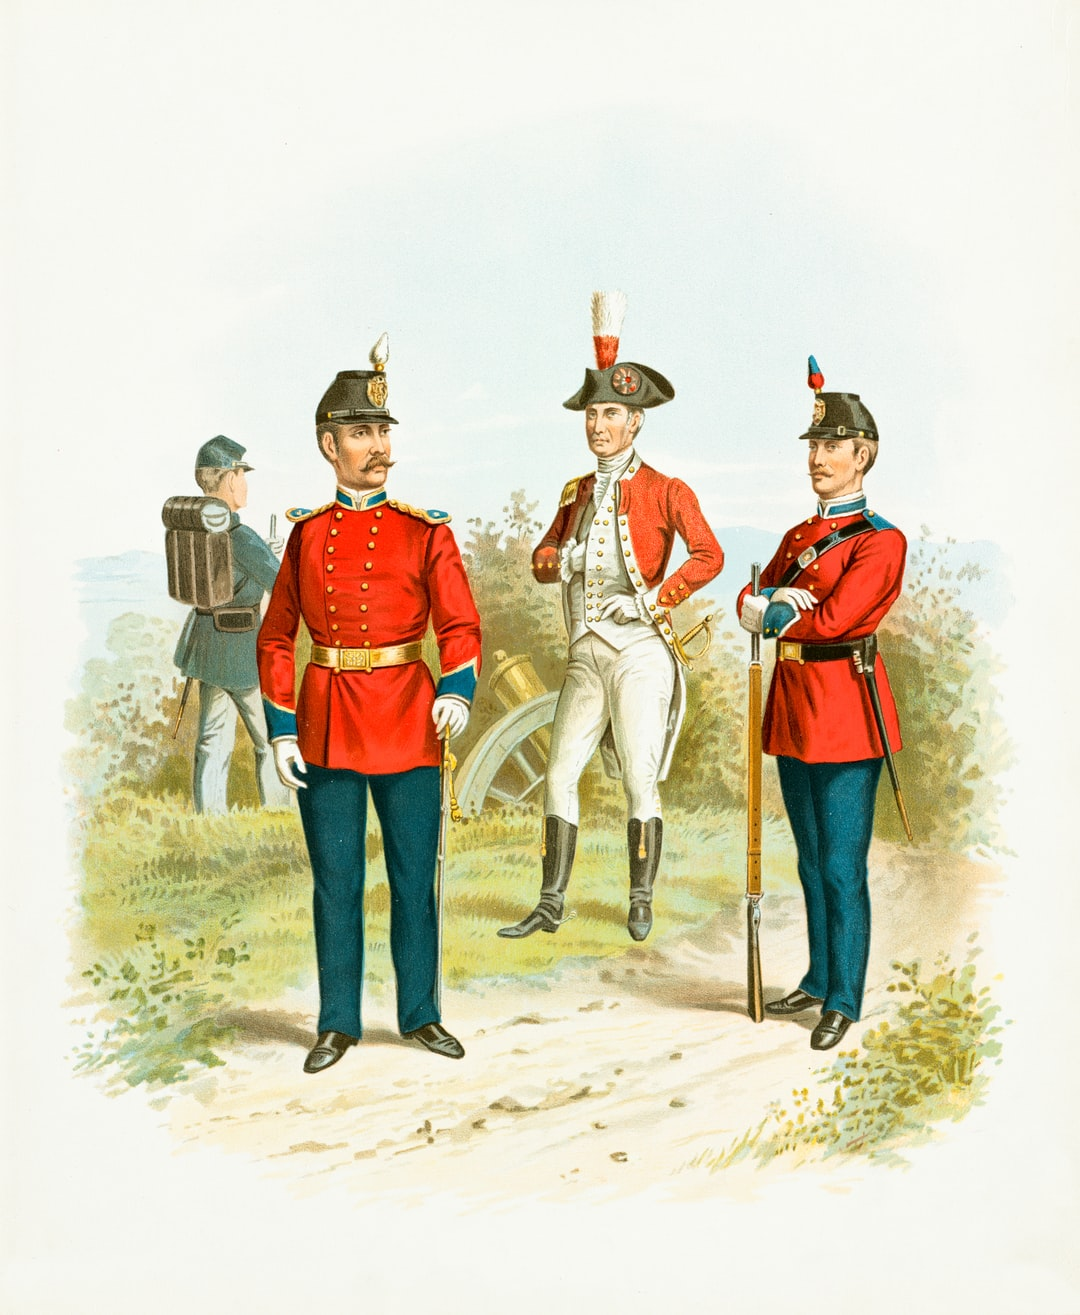 2nd Corps of Cadets 1785-1894. Artist: Tholey, Augustus https://ark.digitalcommonwealth.org/ark:/50959/w6634456q Please visit Digital Commonwealth to view more images: https://www.digitalcommonwealth.org.